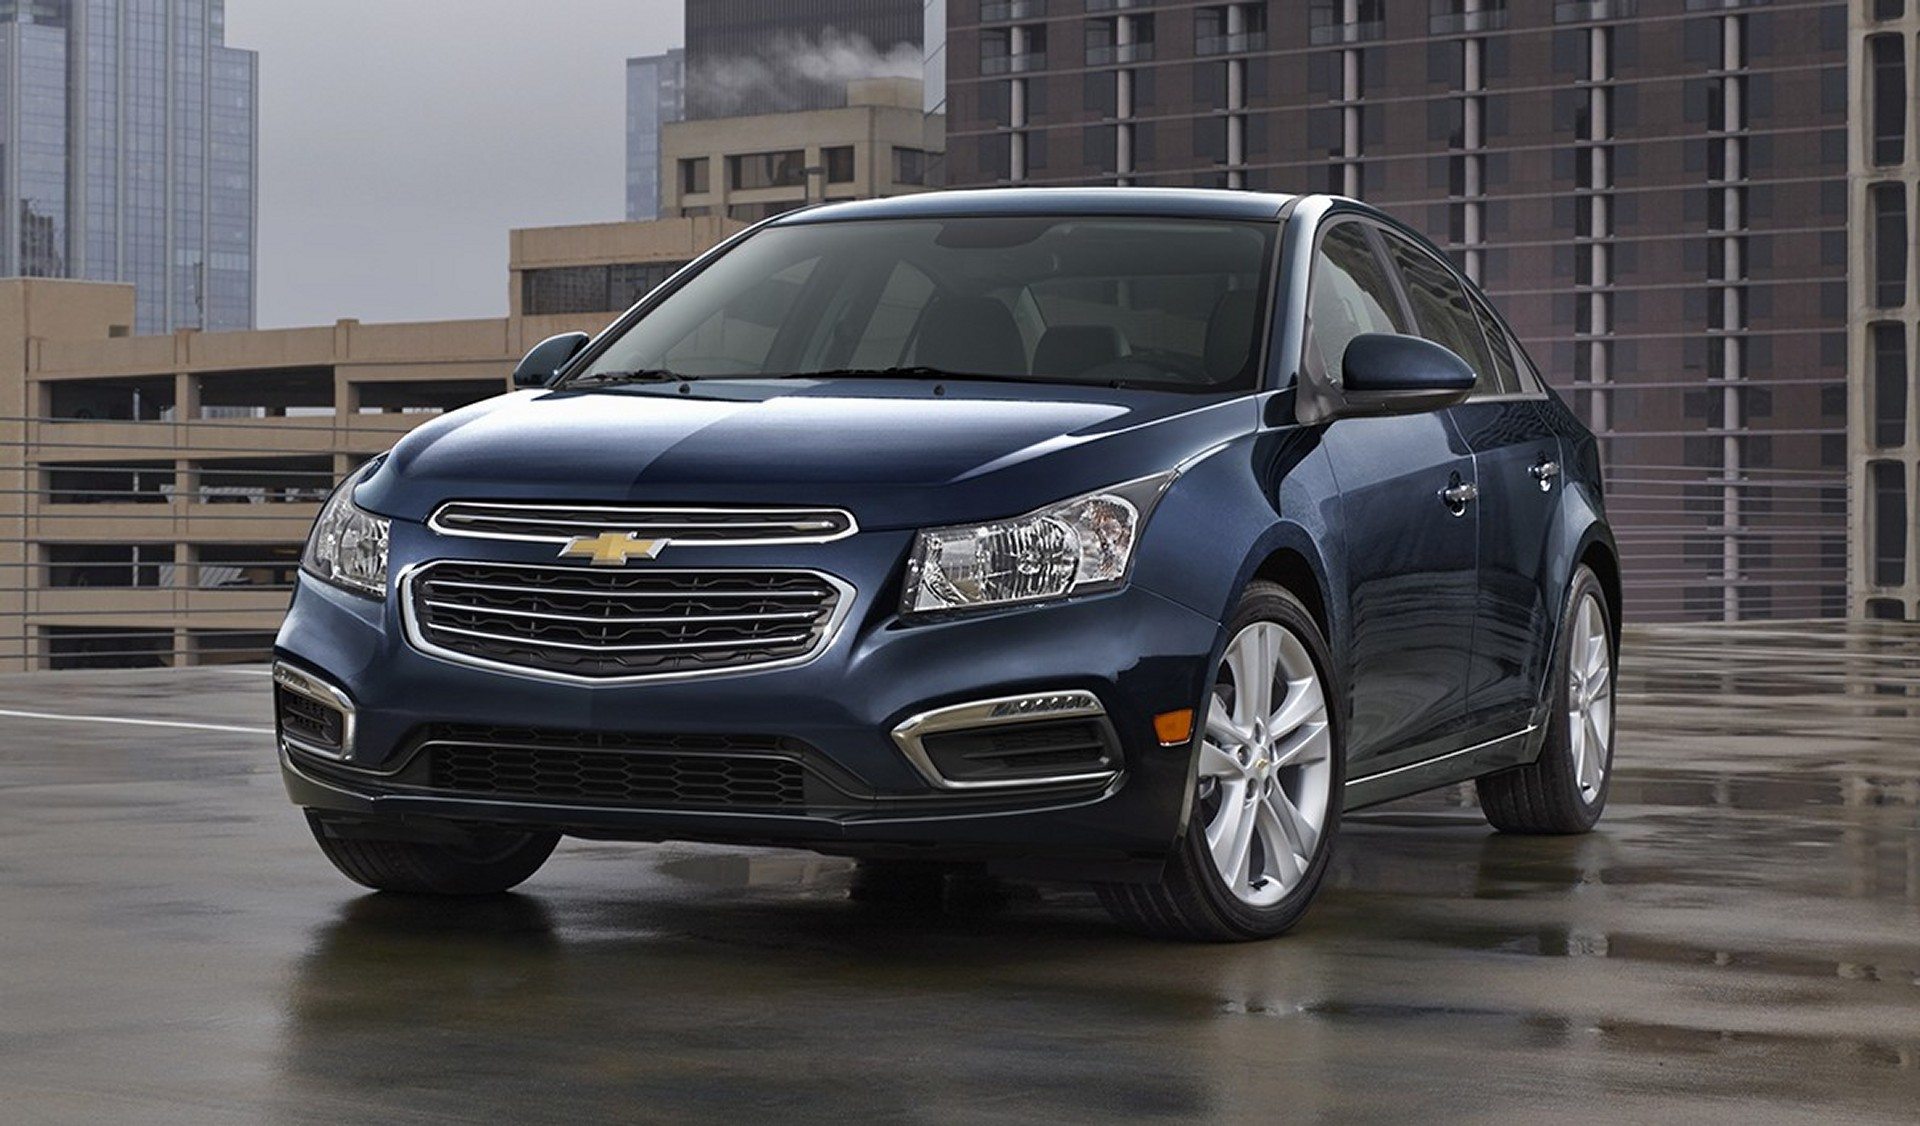 New 2016 Chevy Cruze To Sell Alongside Older Cruze Limited